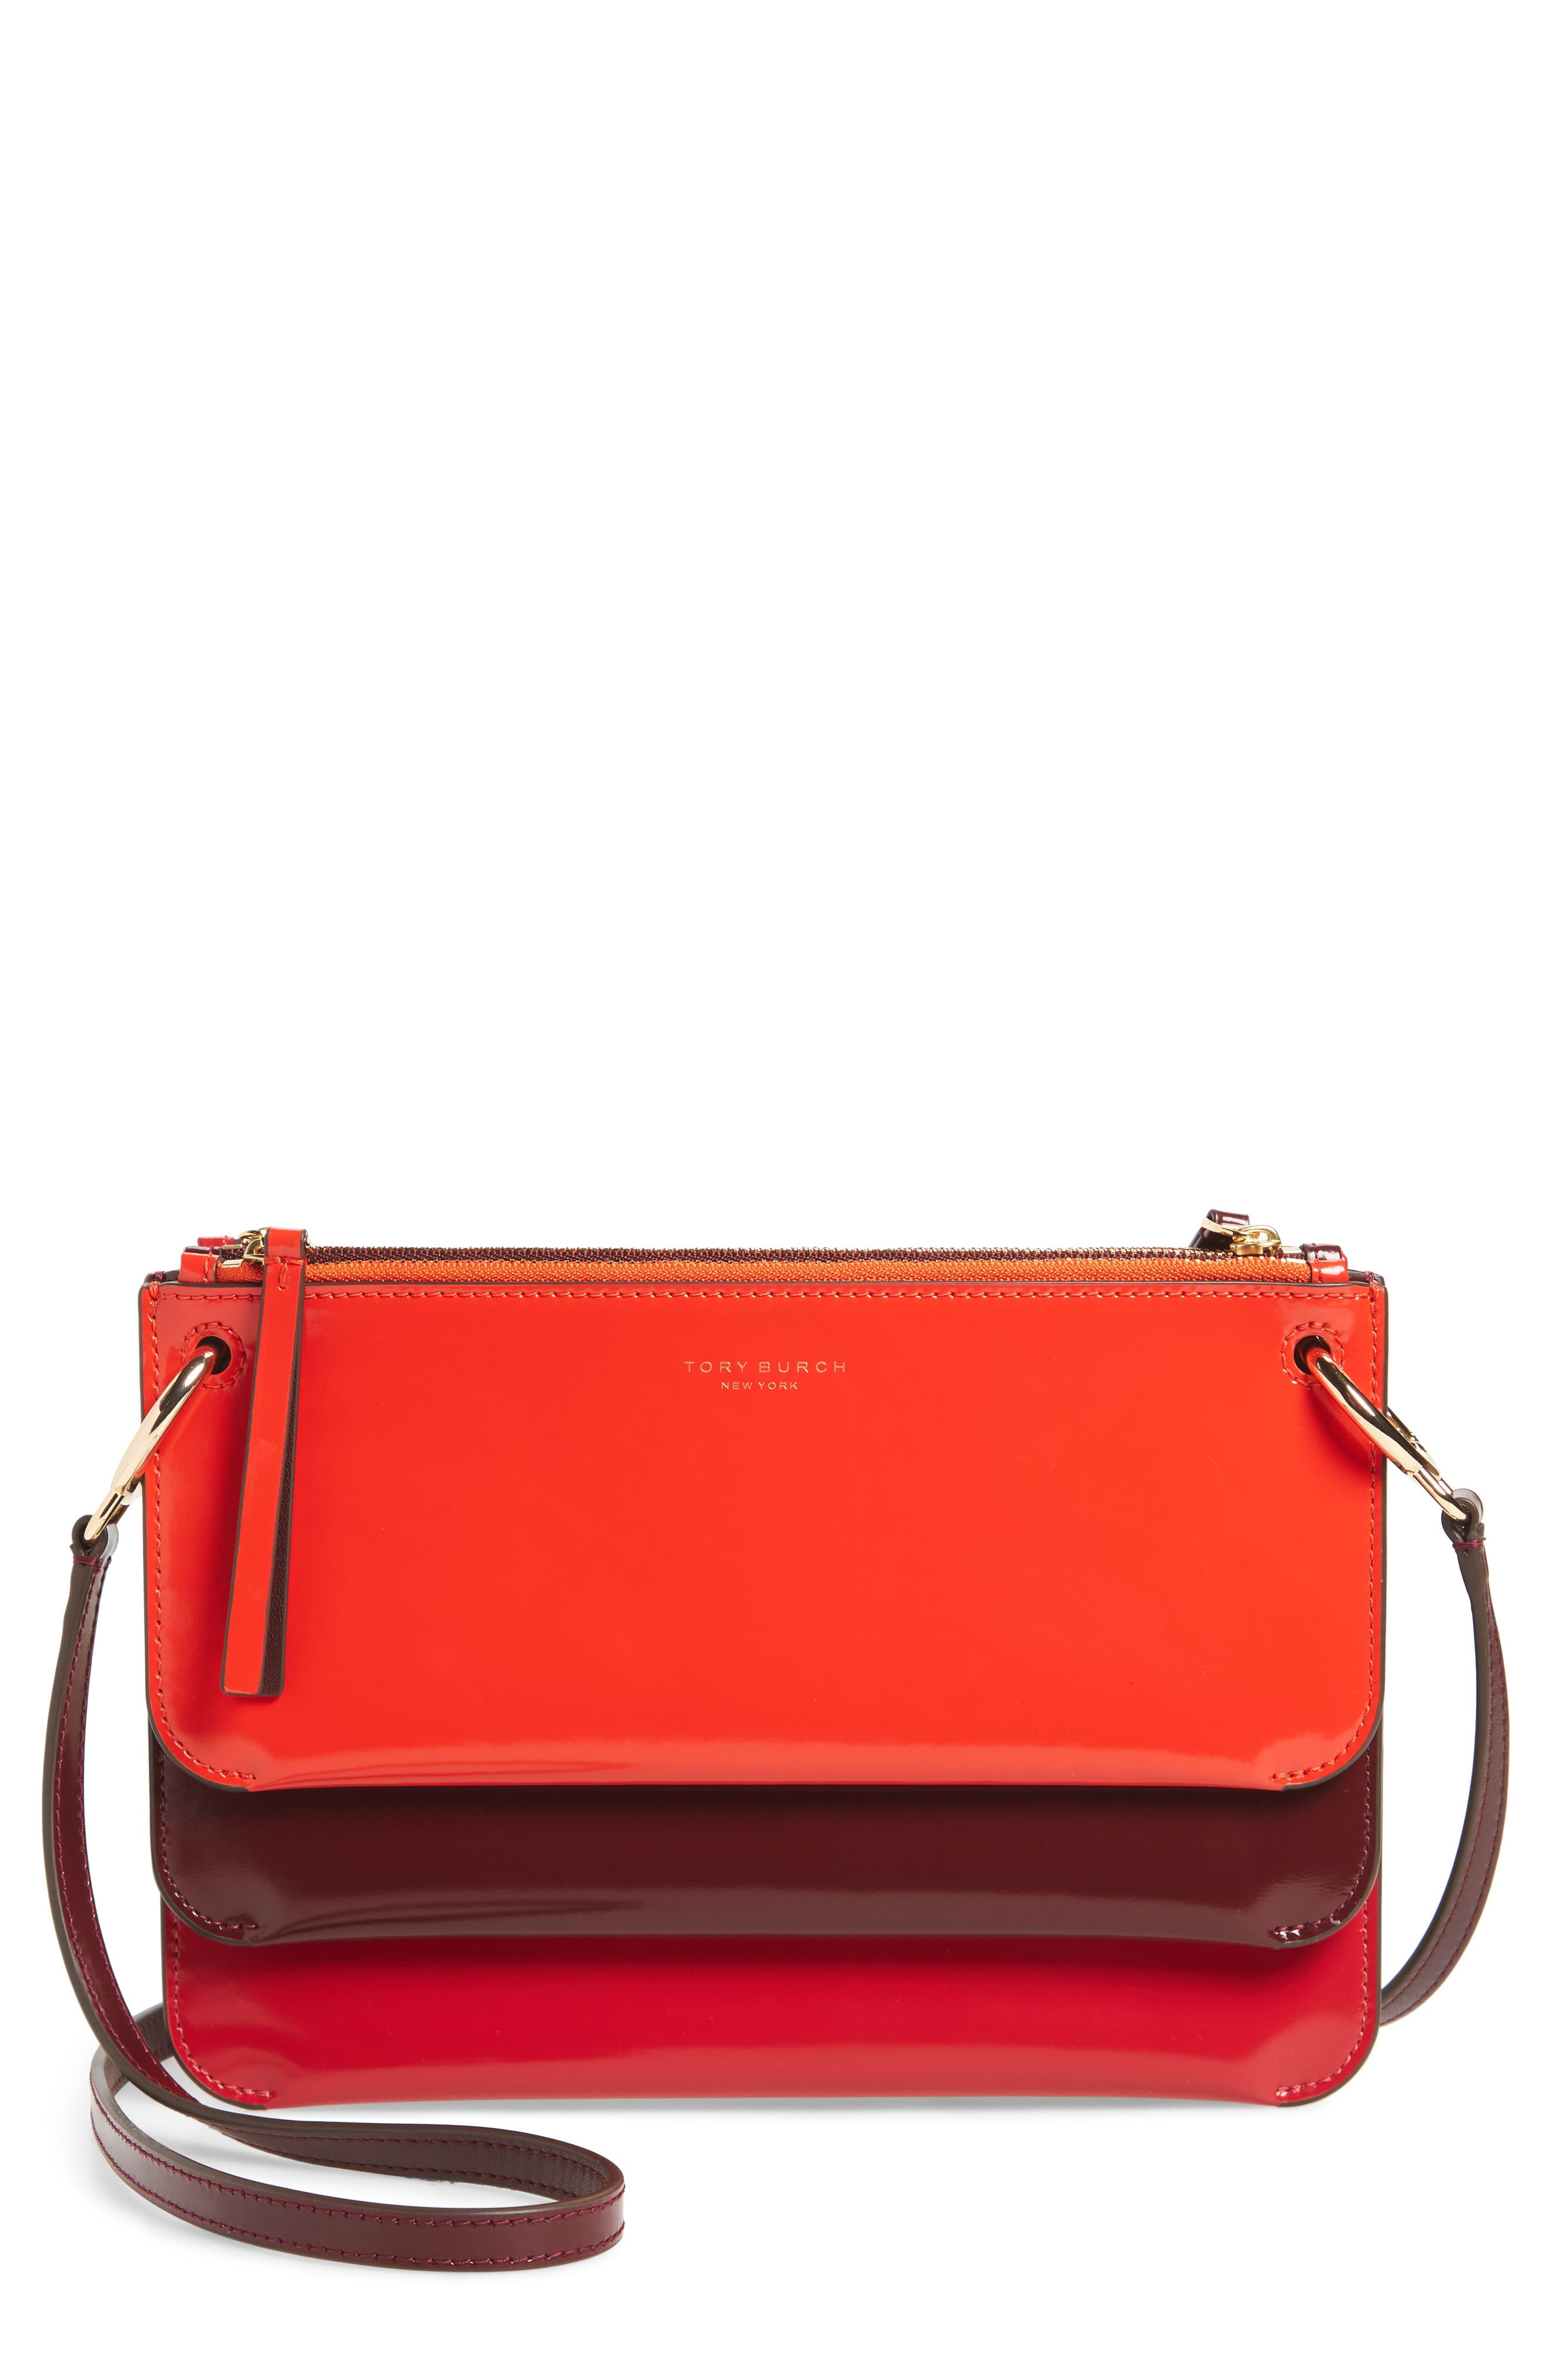 Main Image - Tory Burch Leather Accordion Crossbody Bag